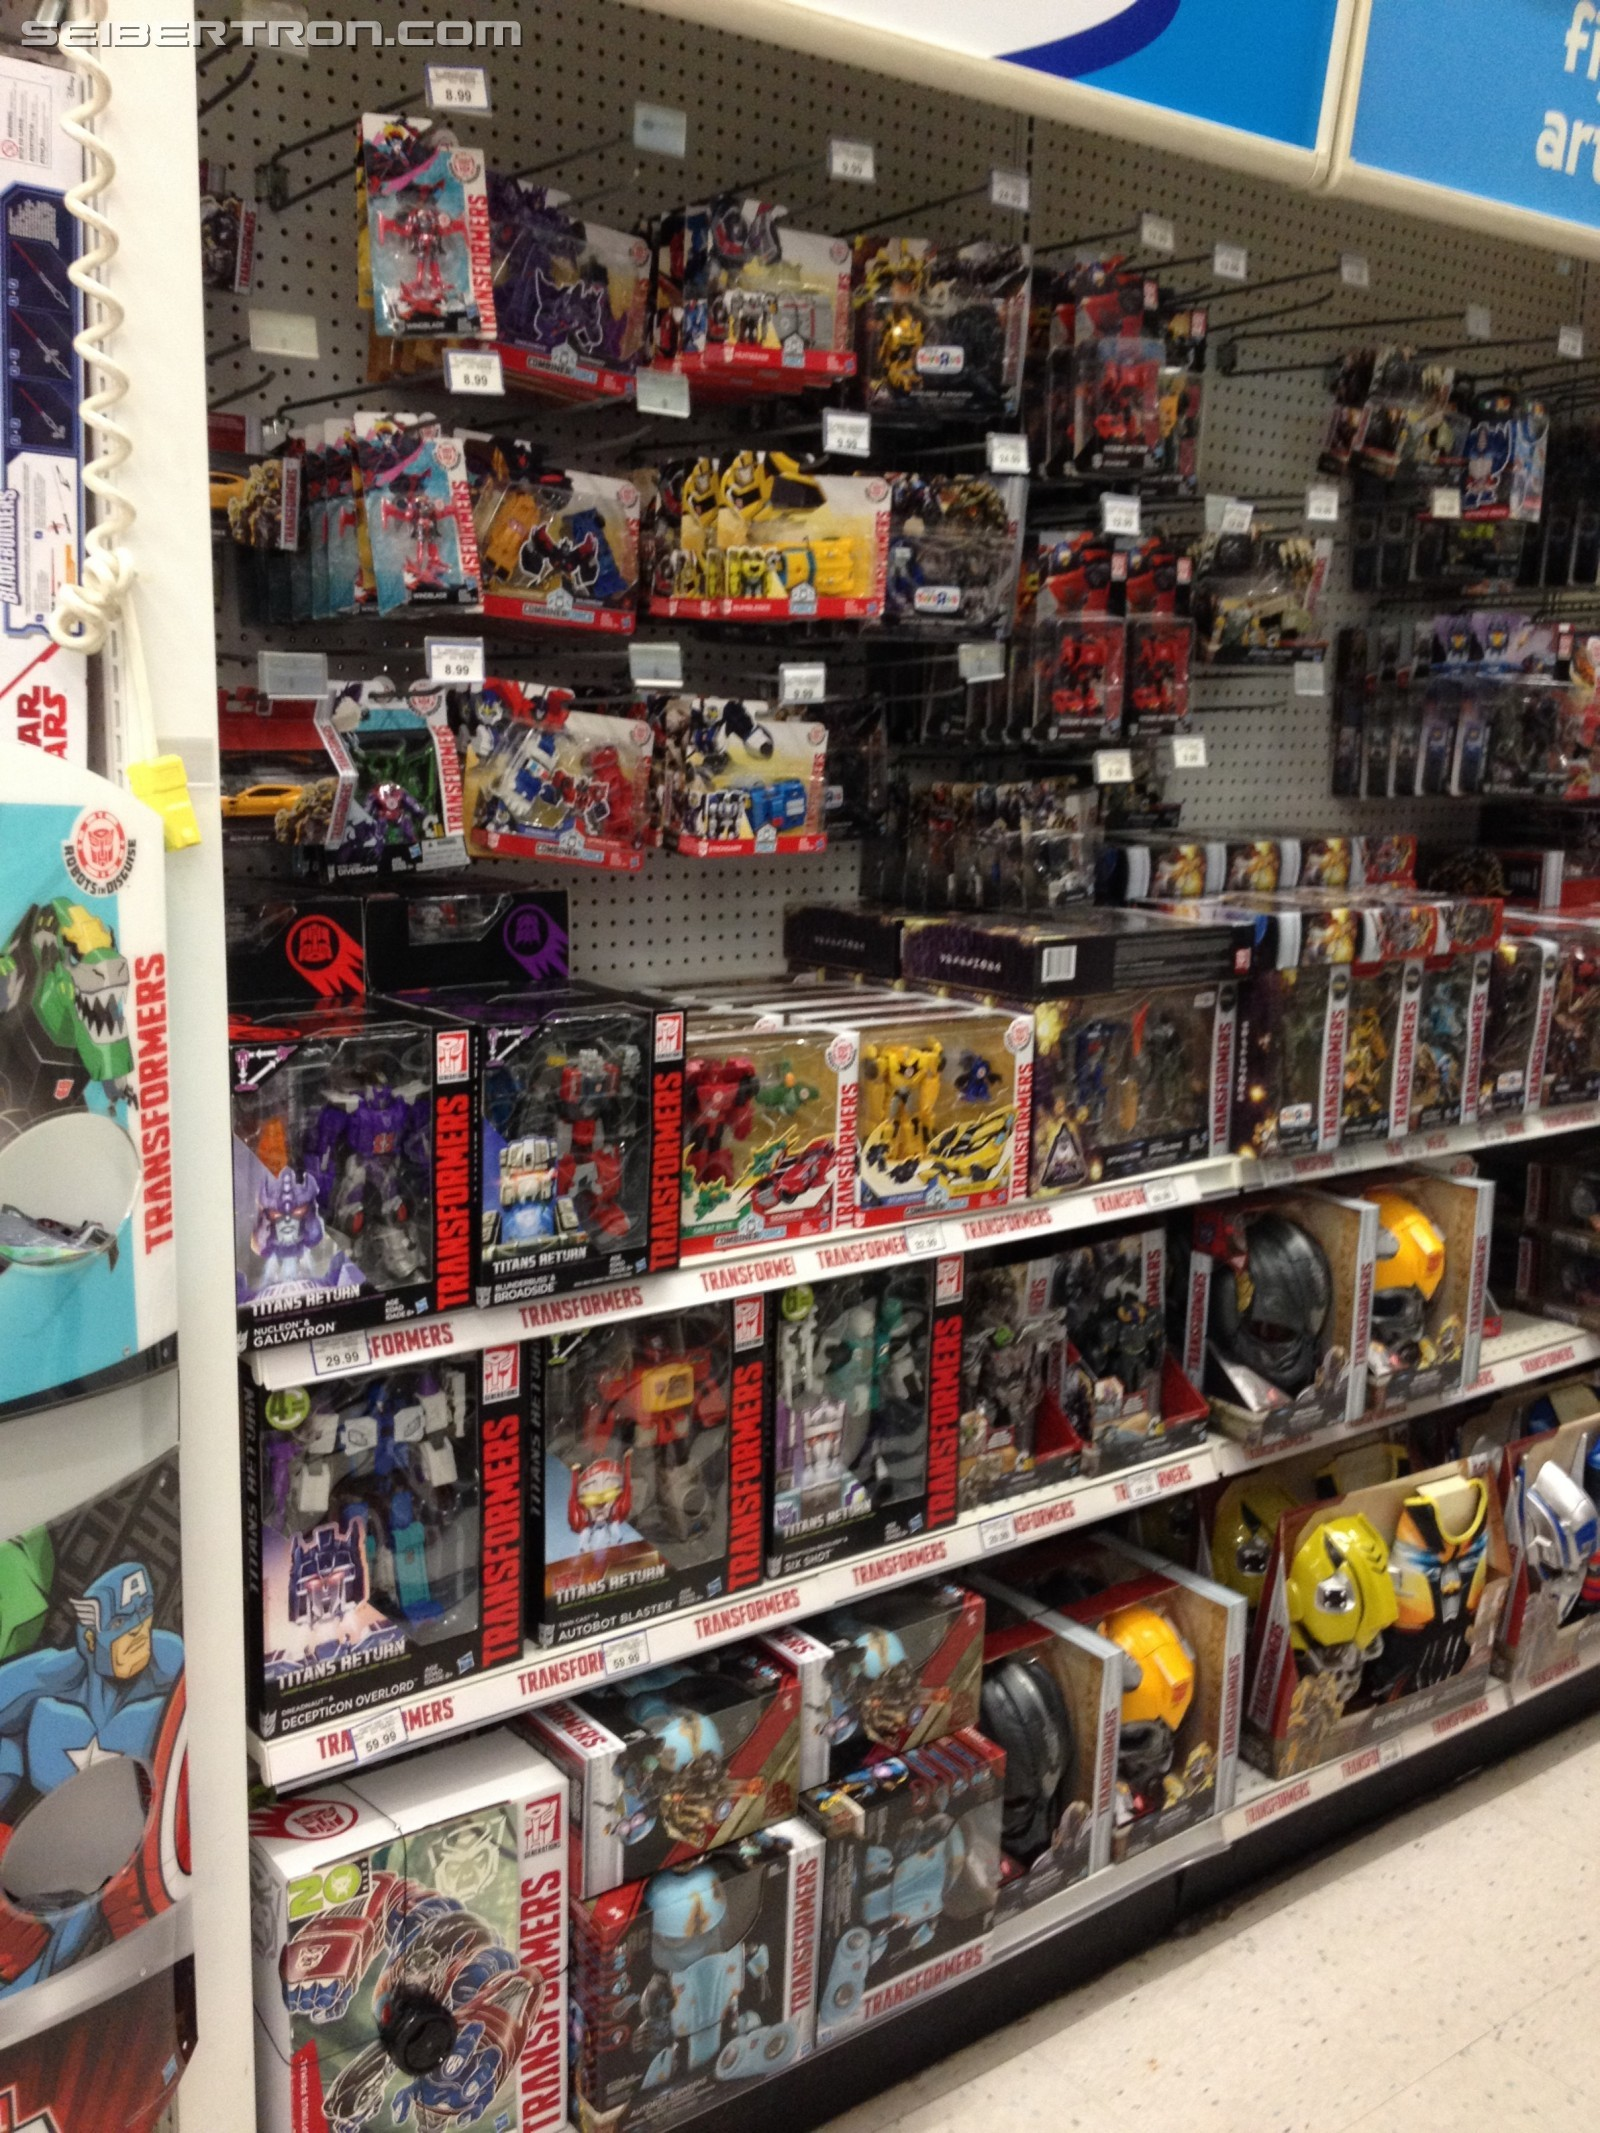 Fall Restock in Full Swing at Toysrus Canada with Entire Aisle Dedicated to Transformers